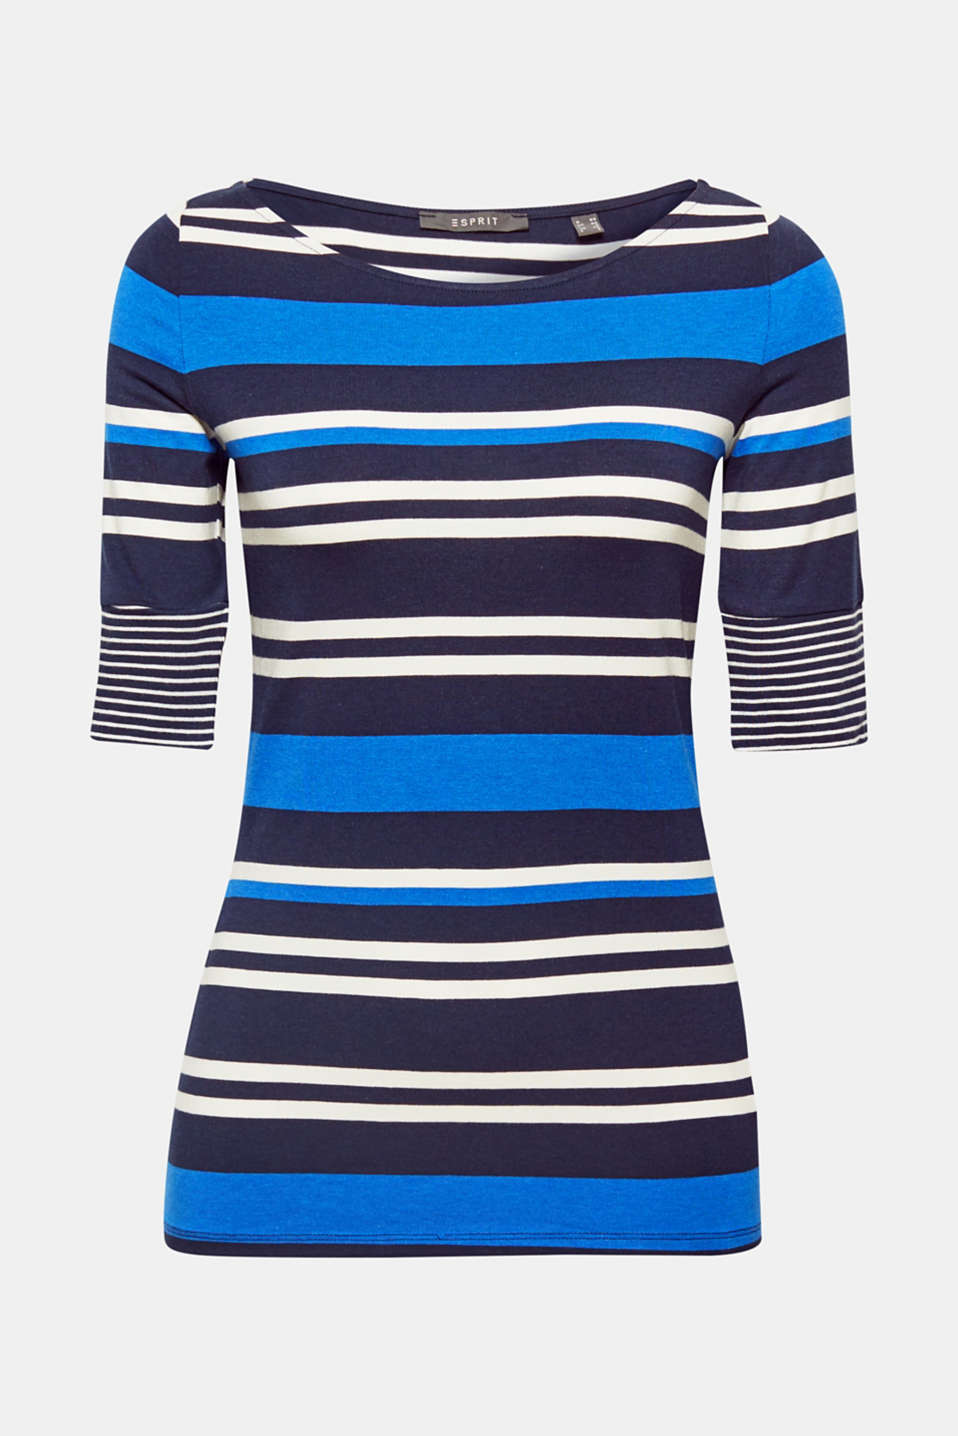 New striped look: In this slim-fitting stretch T-shirt, the stripes in different widths create a modern look and effectively enhance your figure!